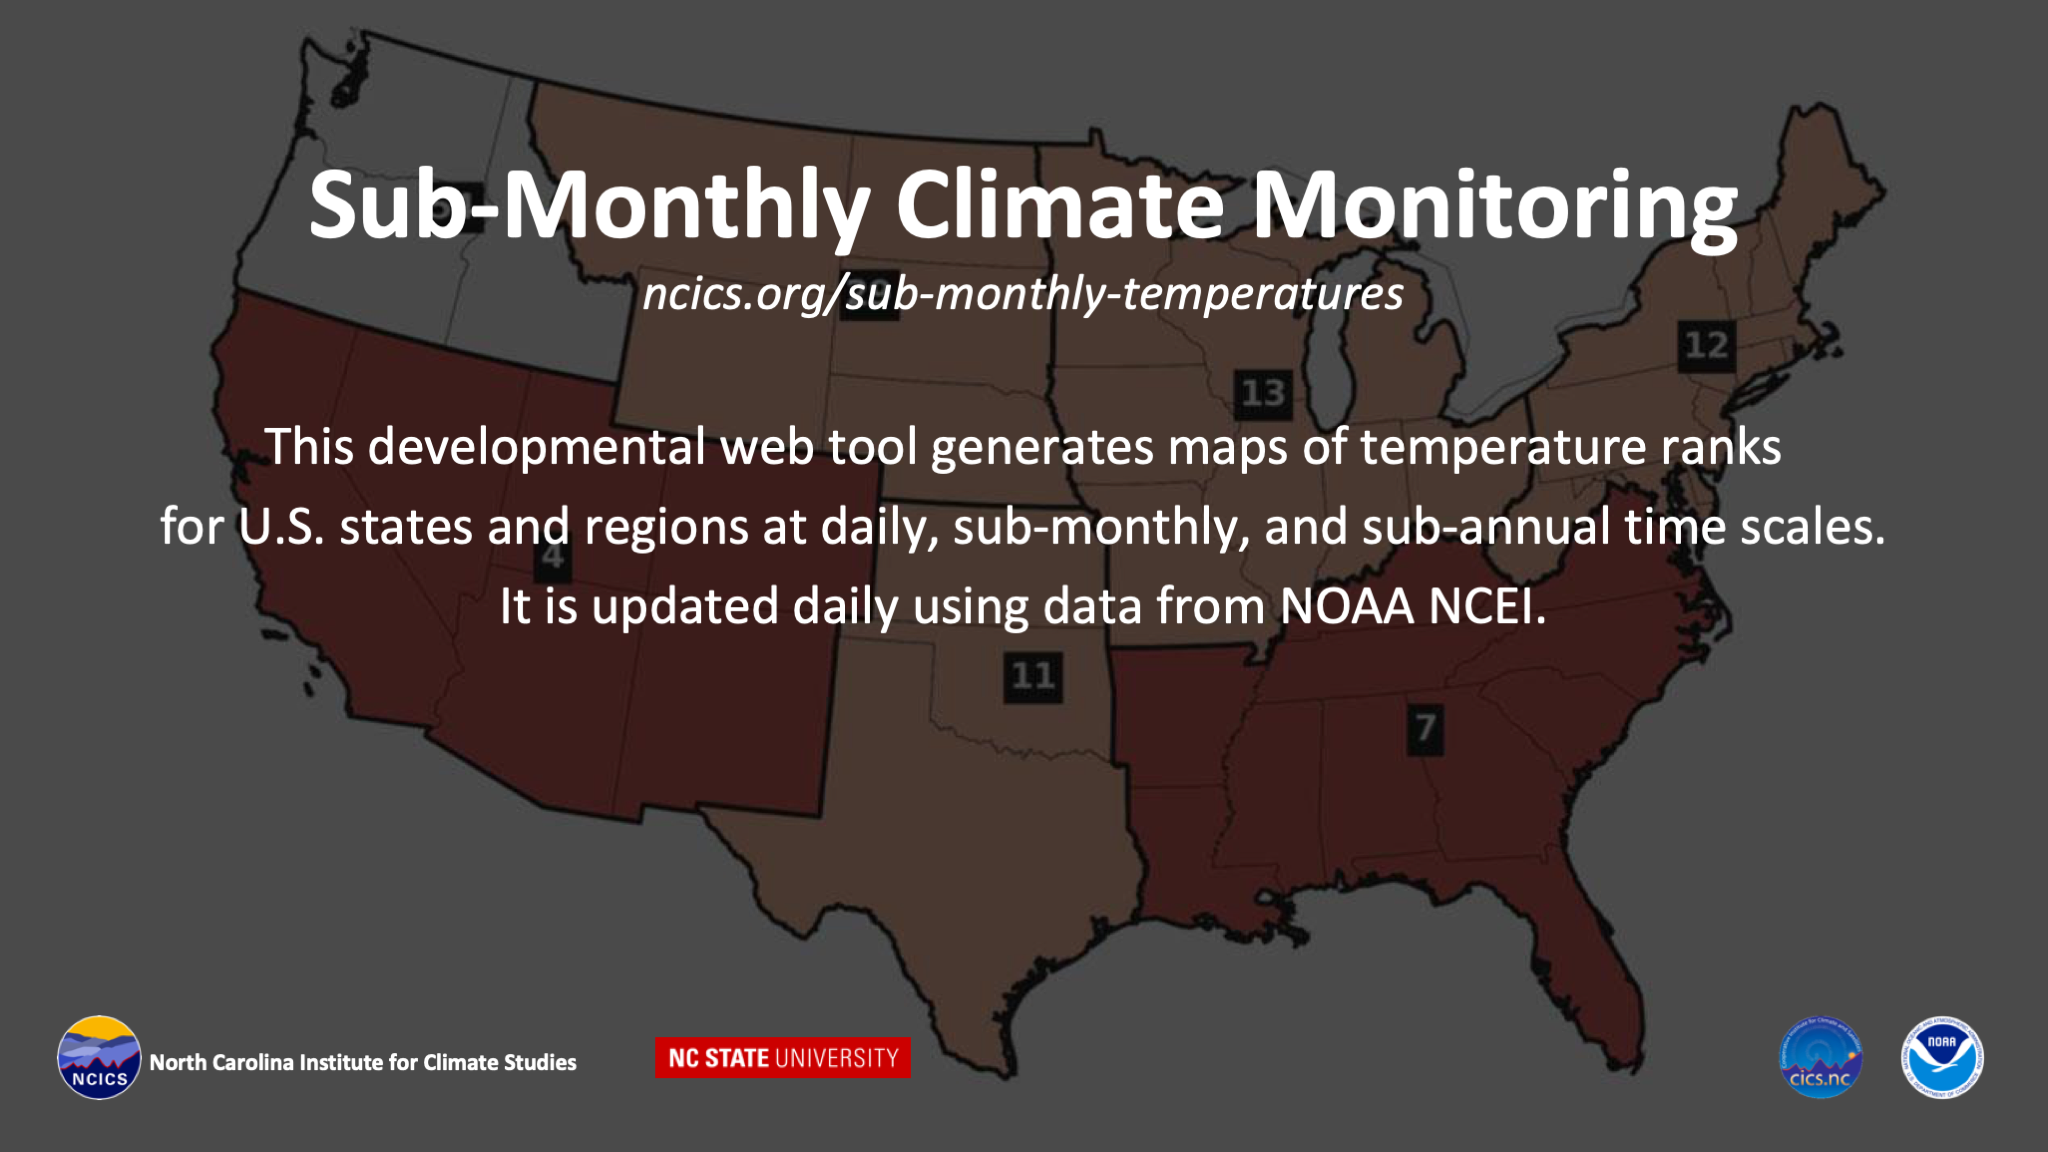 Sub-Monthly Climate Monitoring